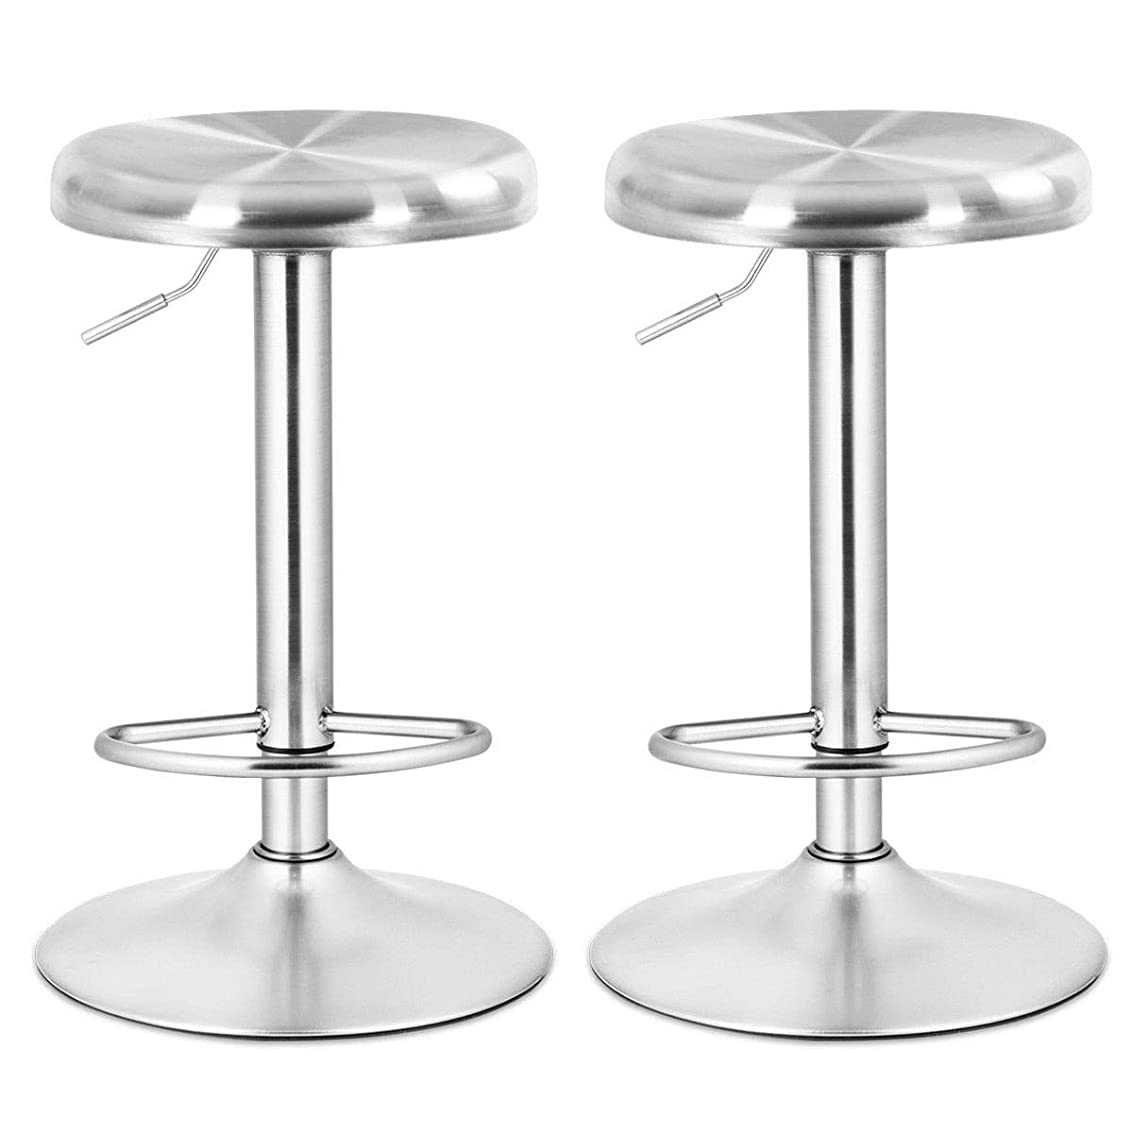 COSTWAY Bar Stool, Modern Swivel Adjustable Height Barstool, Stainless Steel Round Top Barstools with Footrest, for Pub Bistro Kitchen Dining Set of 2 mqbhy1966360515